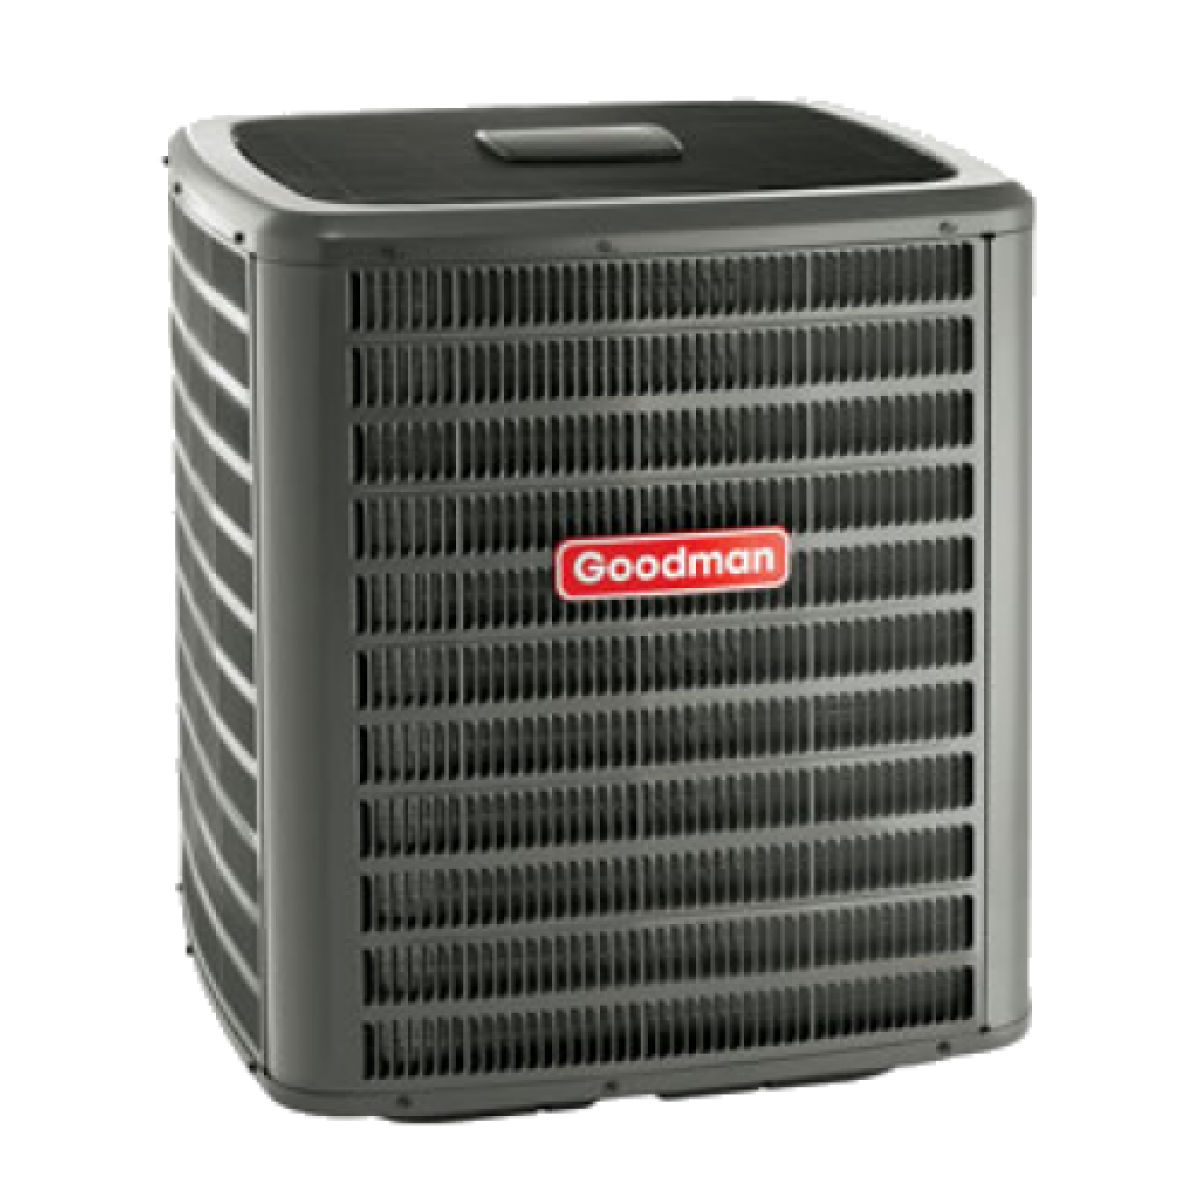 Goodman 1 5 Ton 14 Seer Heat Pump Split System 1 5 Ton